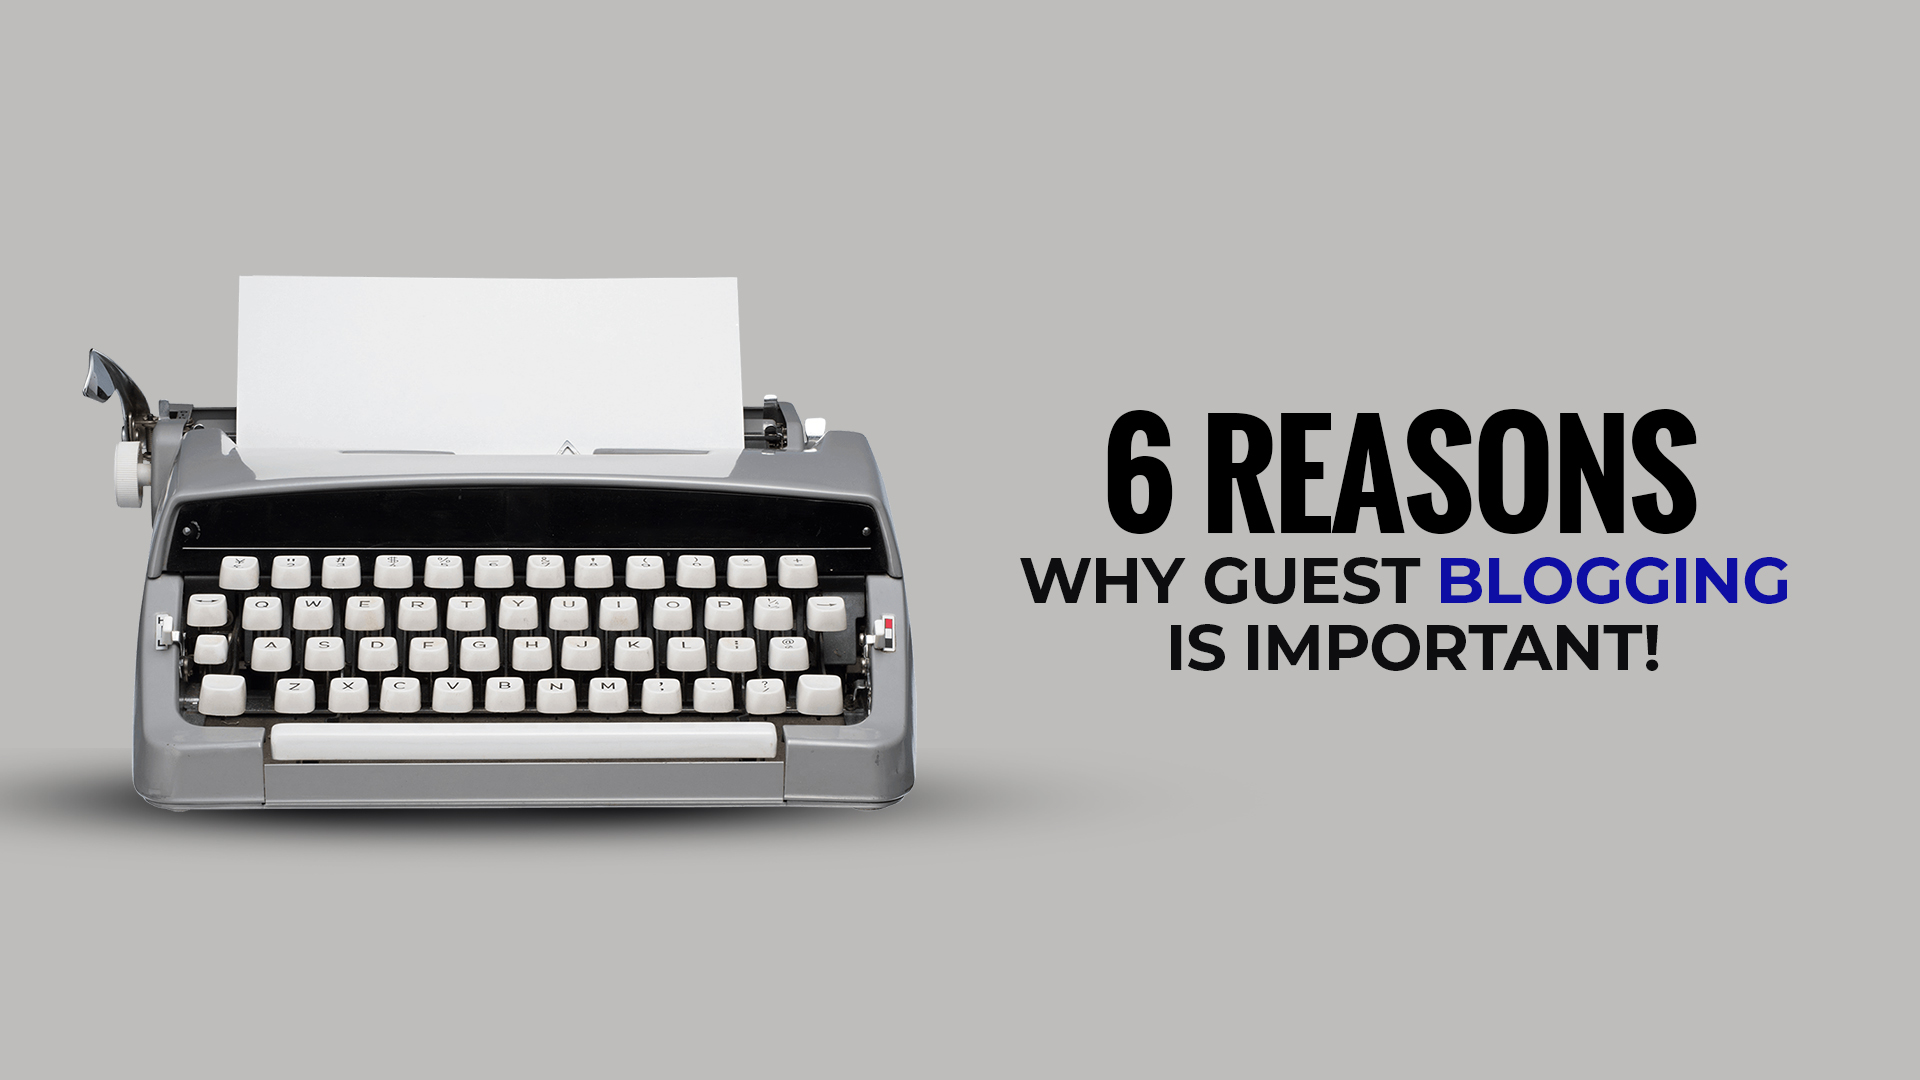 6 Reasons Why Guest Blogging is Important!